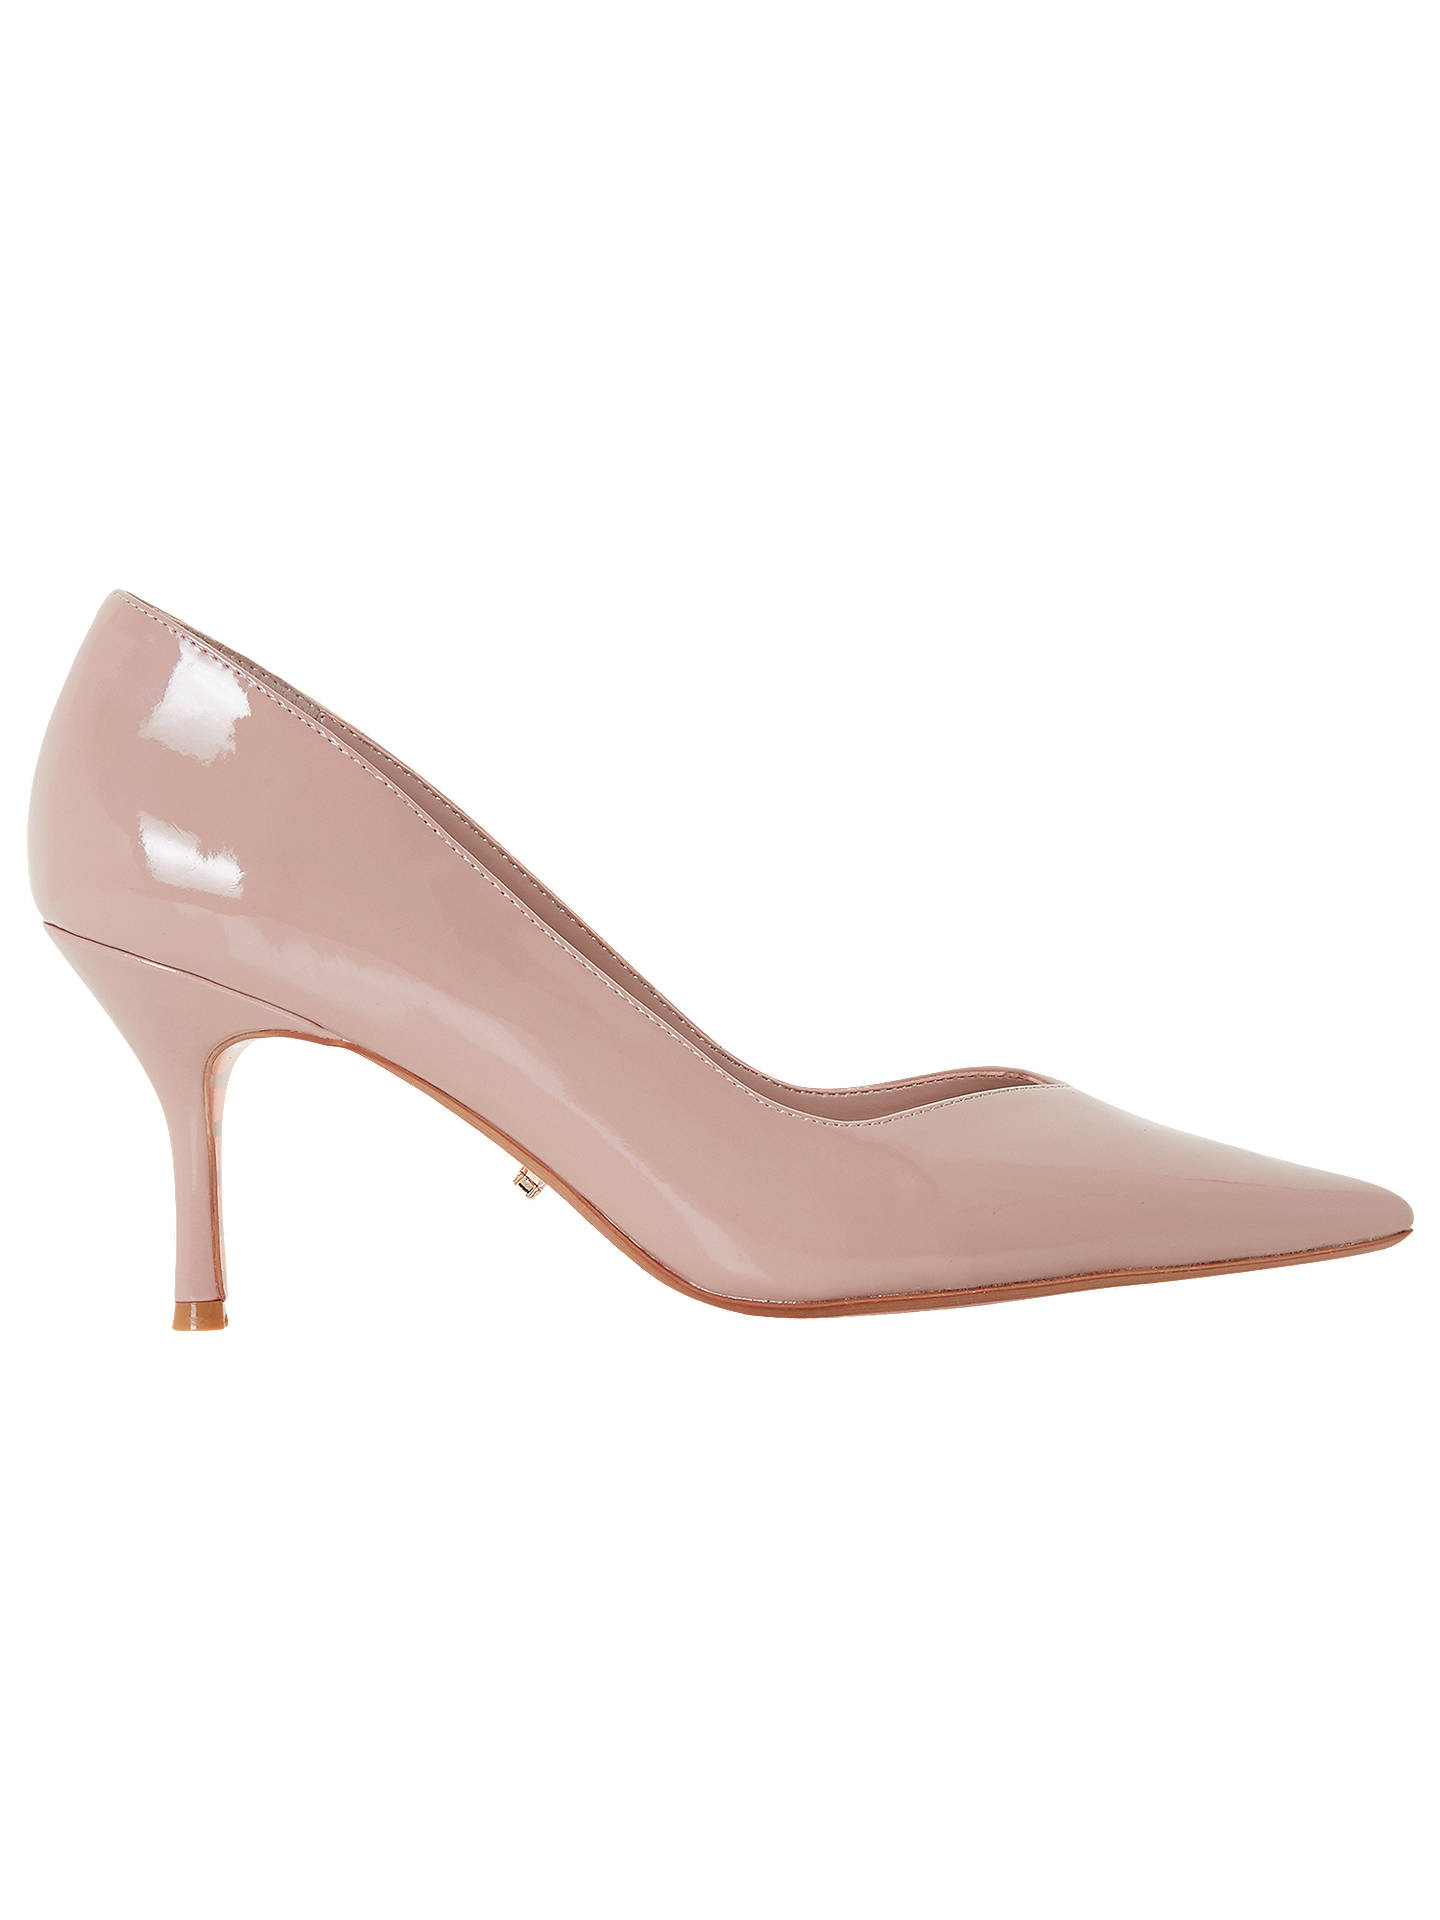 92c8b7d61d6 Dune Andersonn Mid Heel Court Shoes at John Lewis & Partners